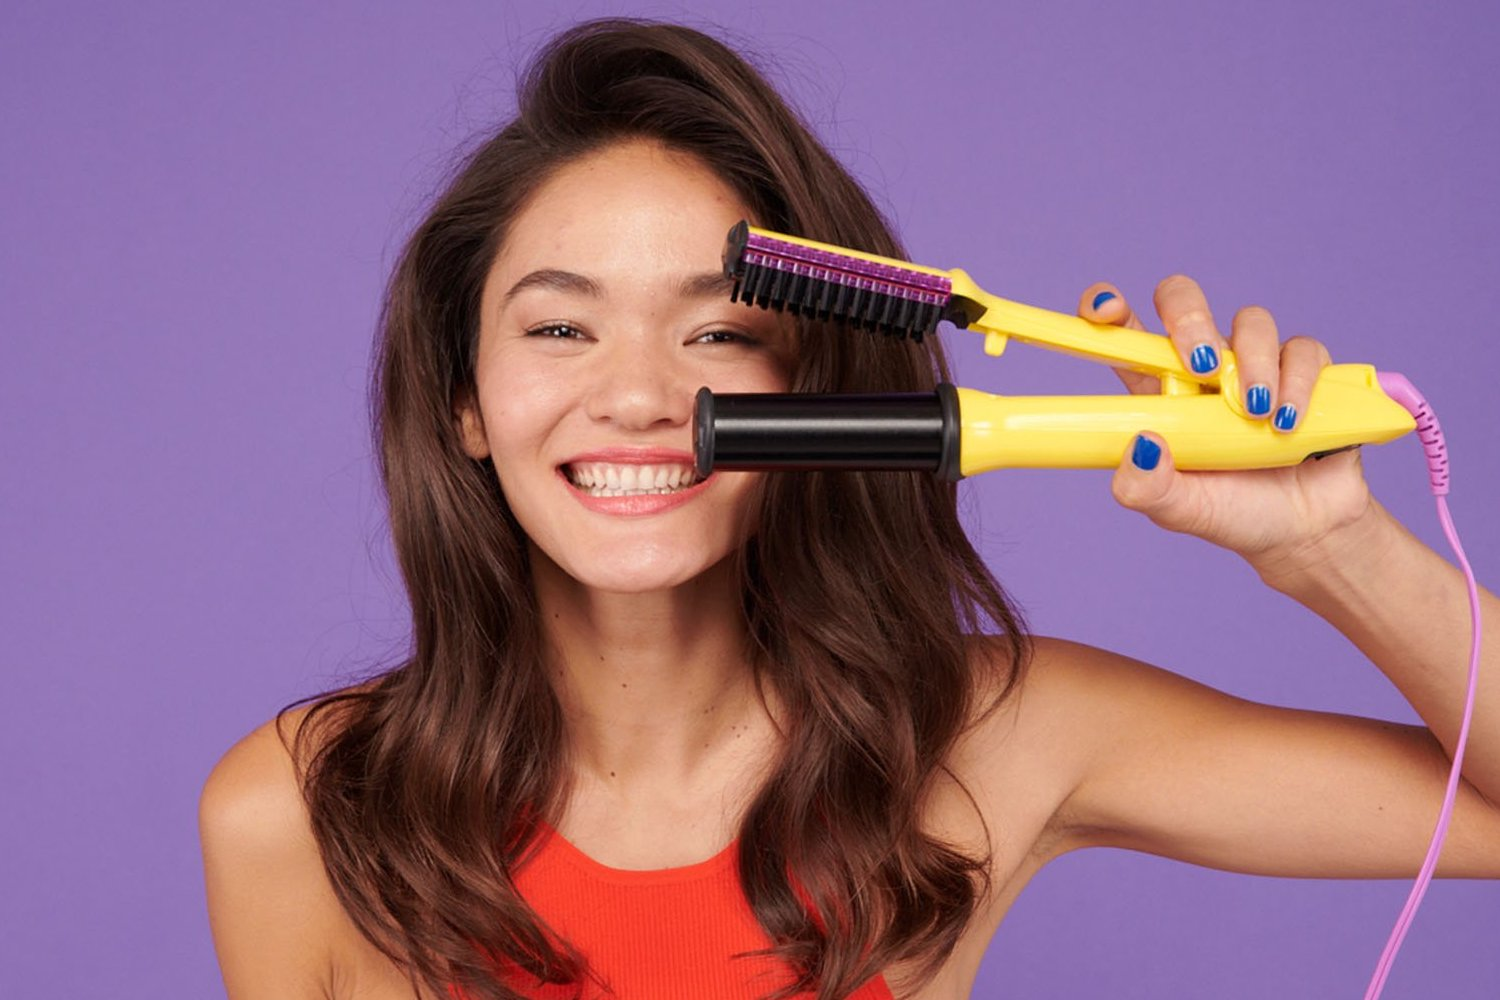 Woman smiling and holding out the Styling Iron in front of her